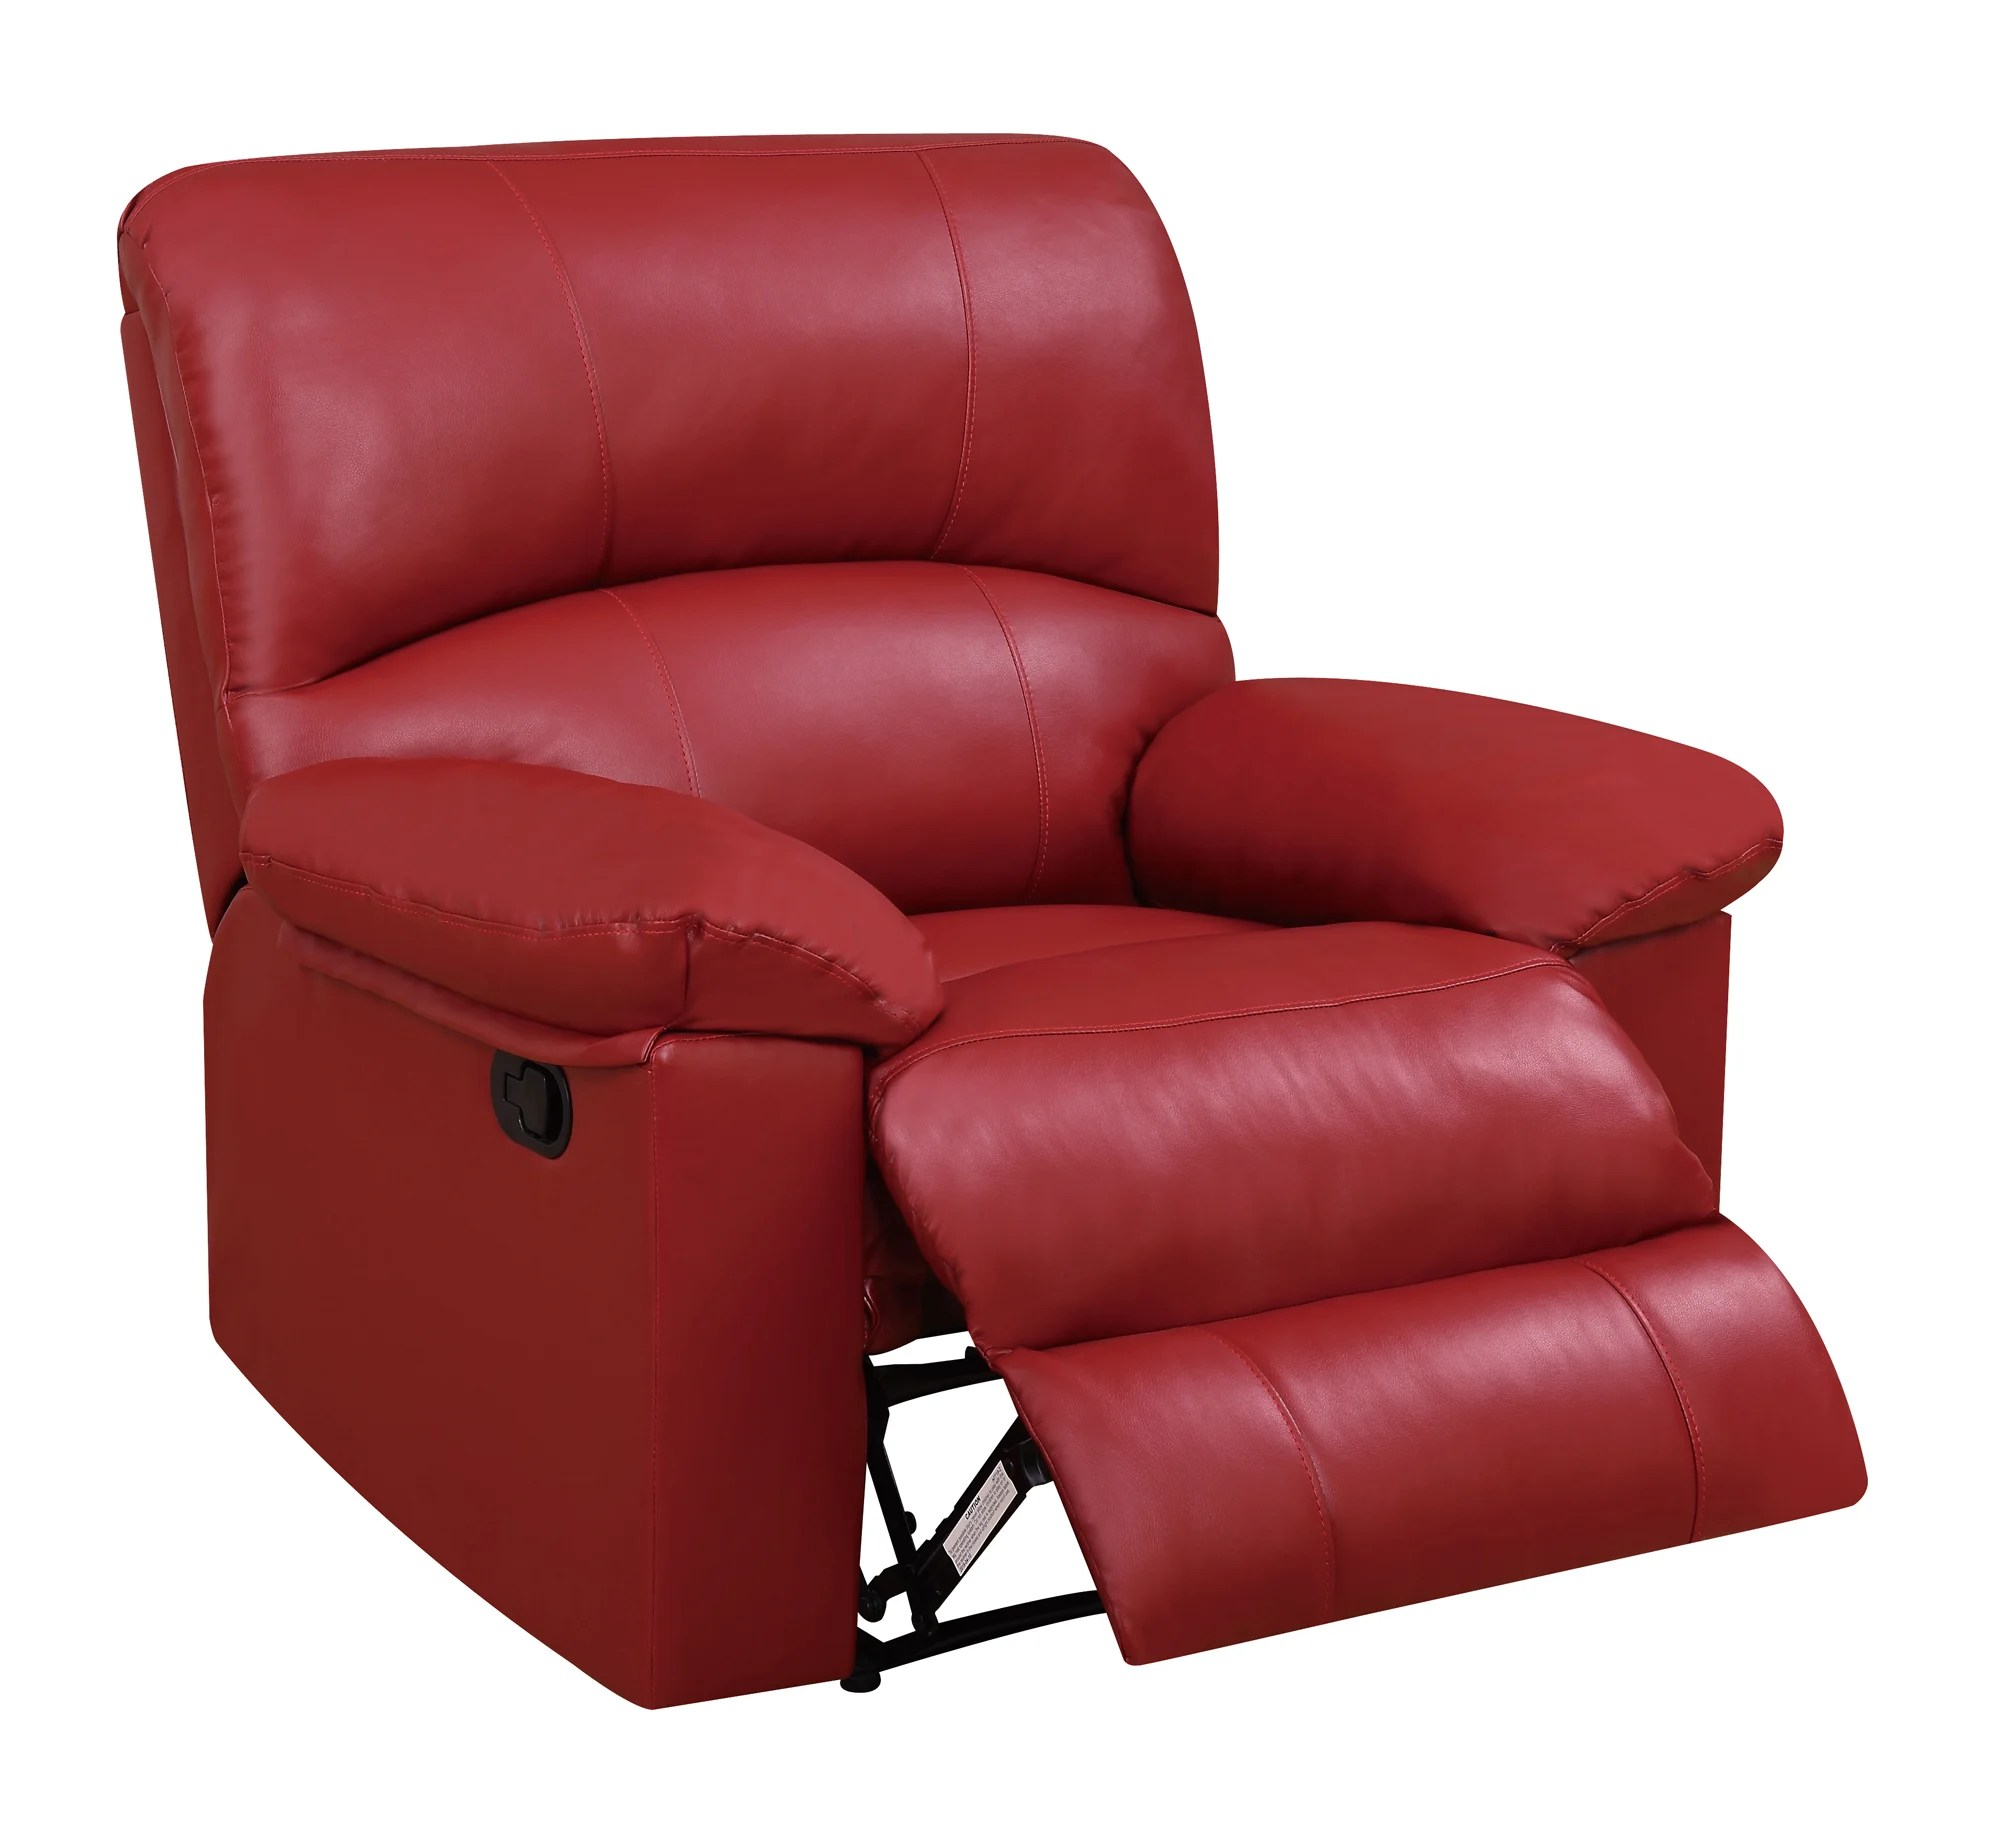 U99270 Red PU Glider Reclining Chair by Global Furniture